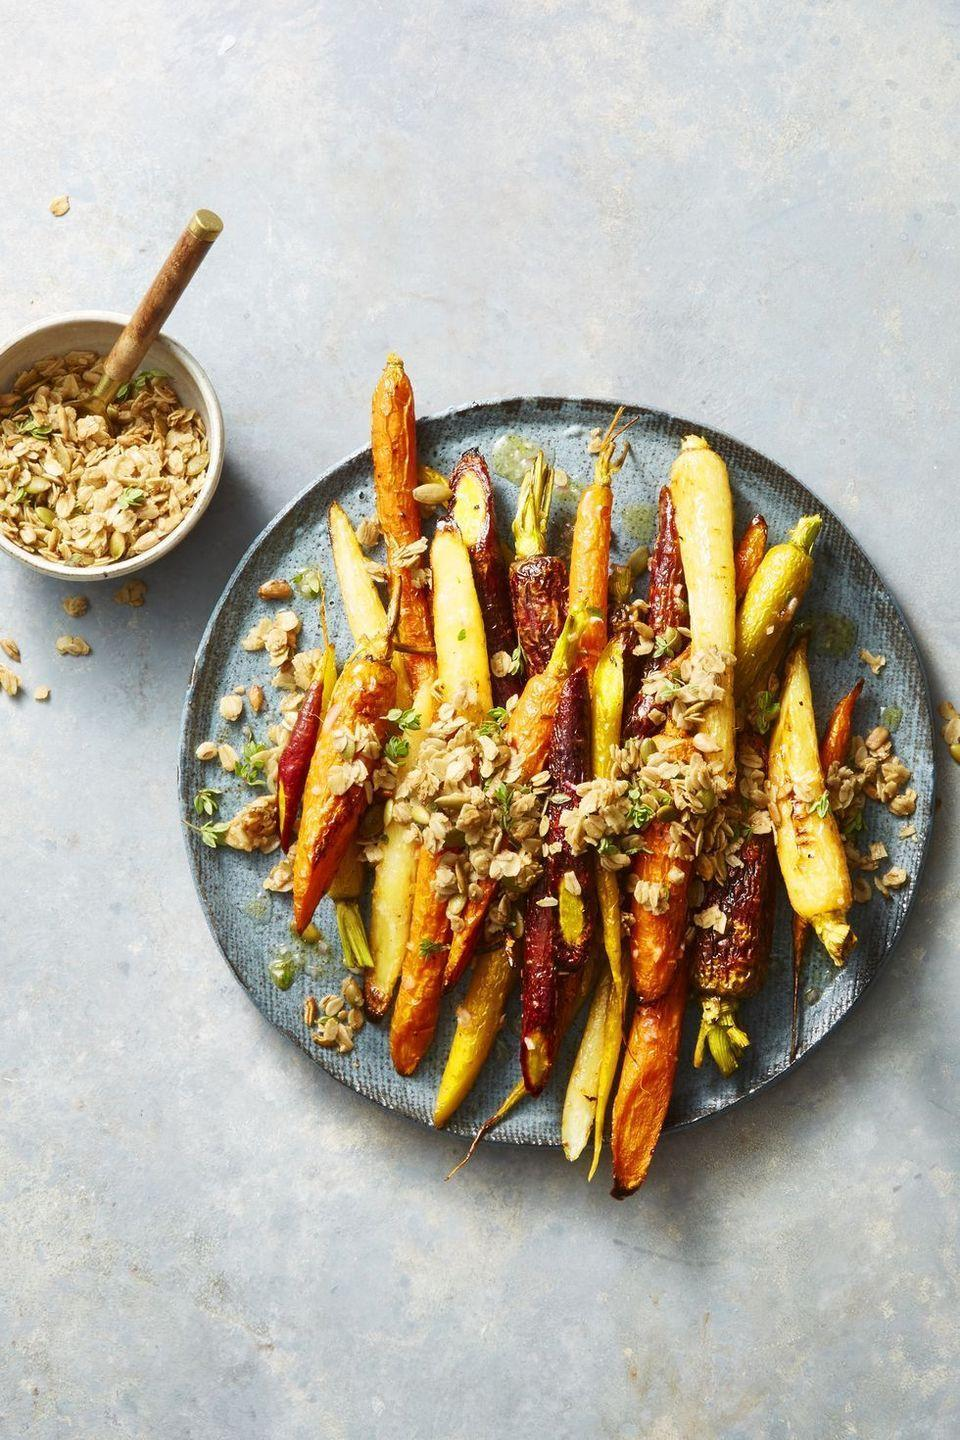 """<p>For an unexpected side, top sweet roasted carrots with spiced, crunchy oats.</p><p><em><a href=""""https://www.goodhousekeeping.com/food-recipes/easy/a22750582/roasted-carrots-with-cumin-thyme-granola-recipe/"""" rel=""""nofollow noopener"""" target=""""_blank"""" data-ylk=""""slk:Get the recipe for Roasted Carrots with Cumin-Thyme Granola »"""" class=""""link rapid-noclick-resp"""">Get the recipe for Roasted Carrots with Cumin-Thyme Granola »</a></em></p>"""